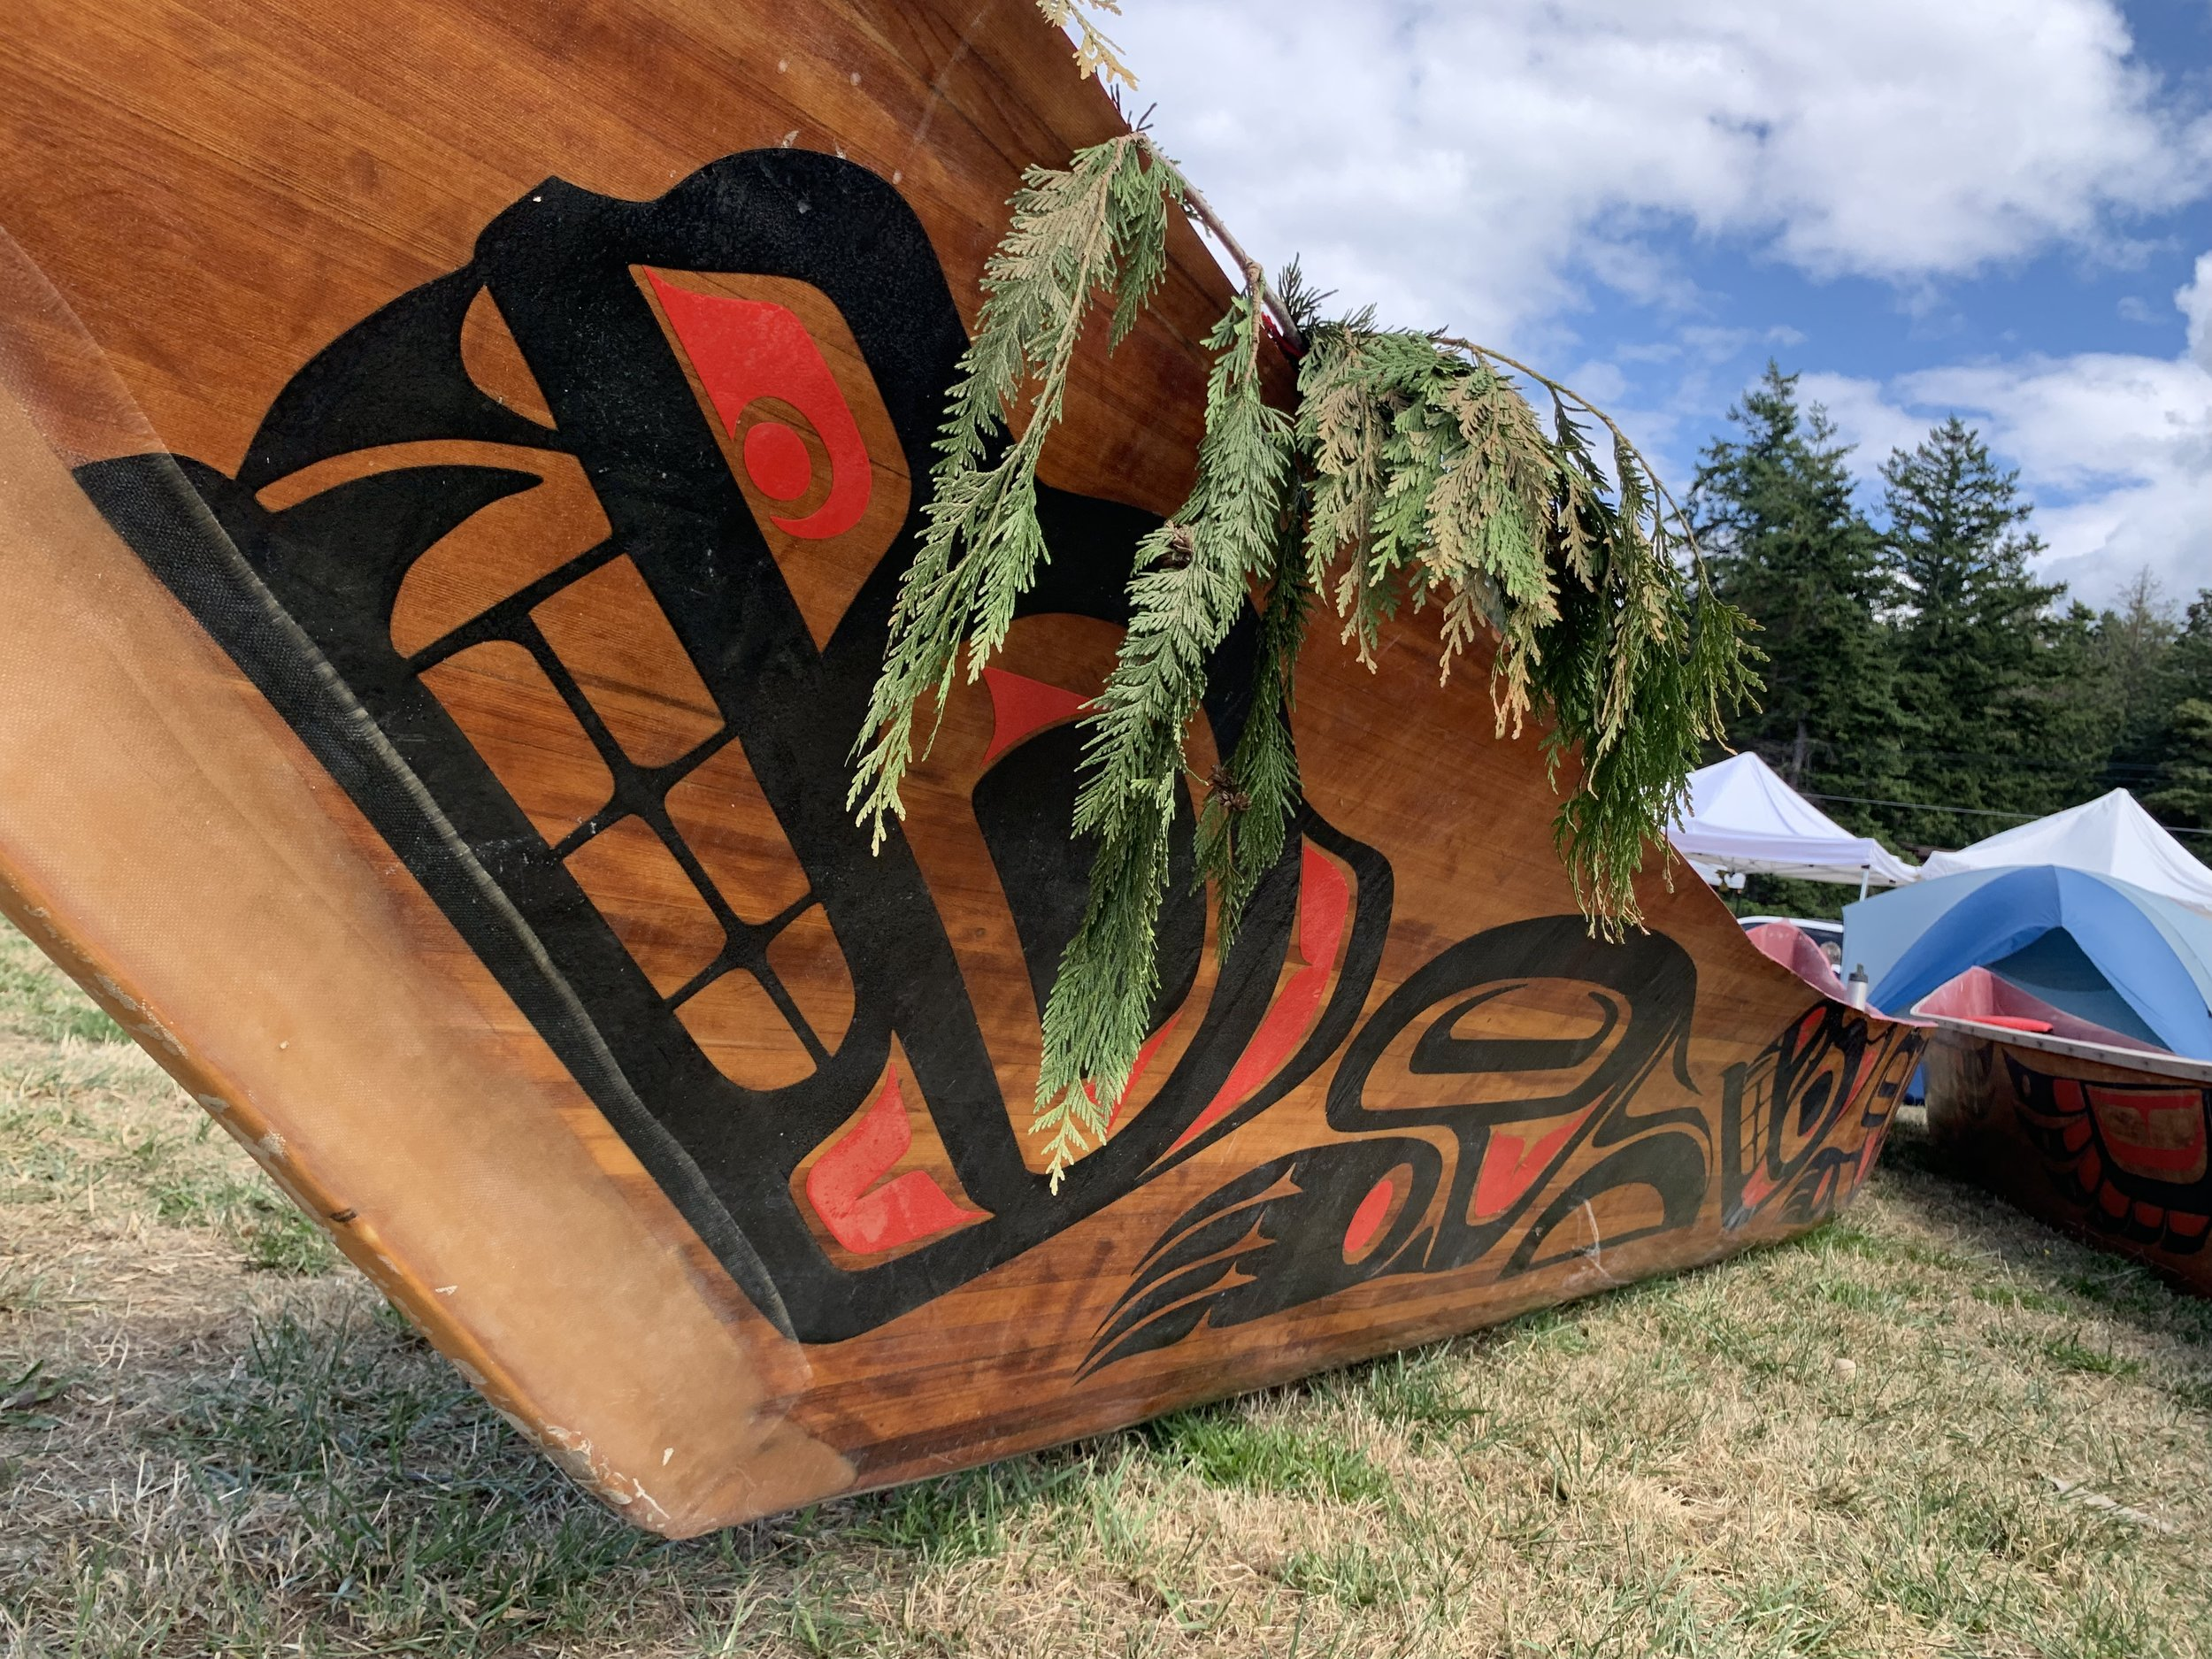 One of nearly 100 canoes paddle to Lummi Nation for the the 2019 Paddle to Lummi. Photo by Aaron Straight.